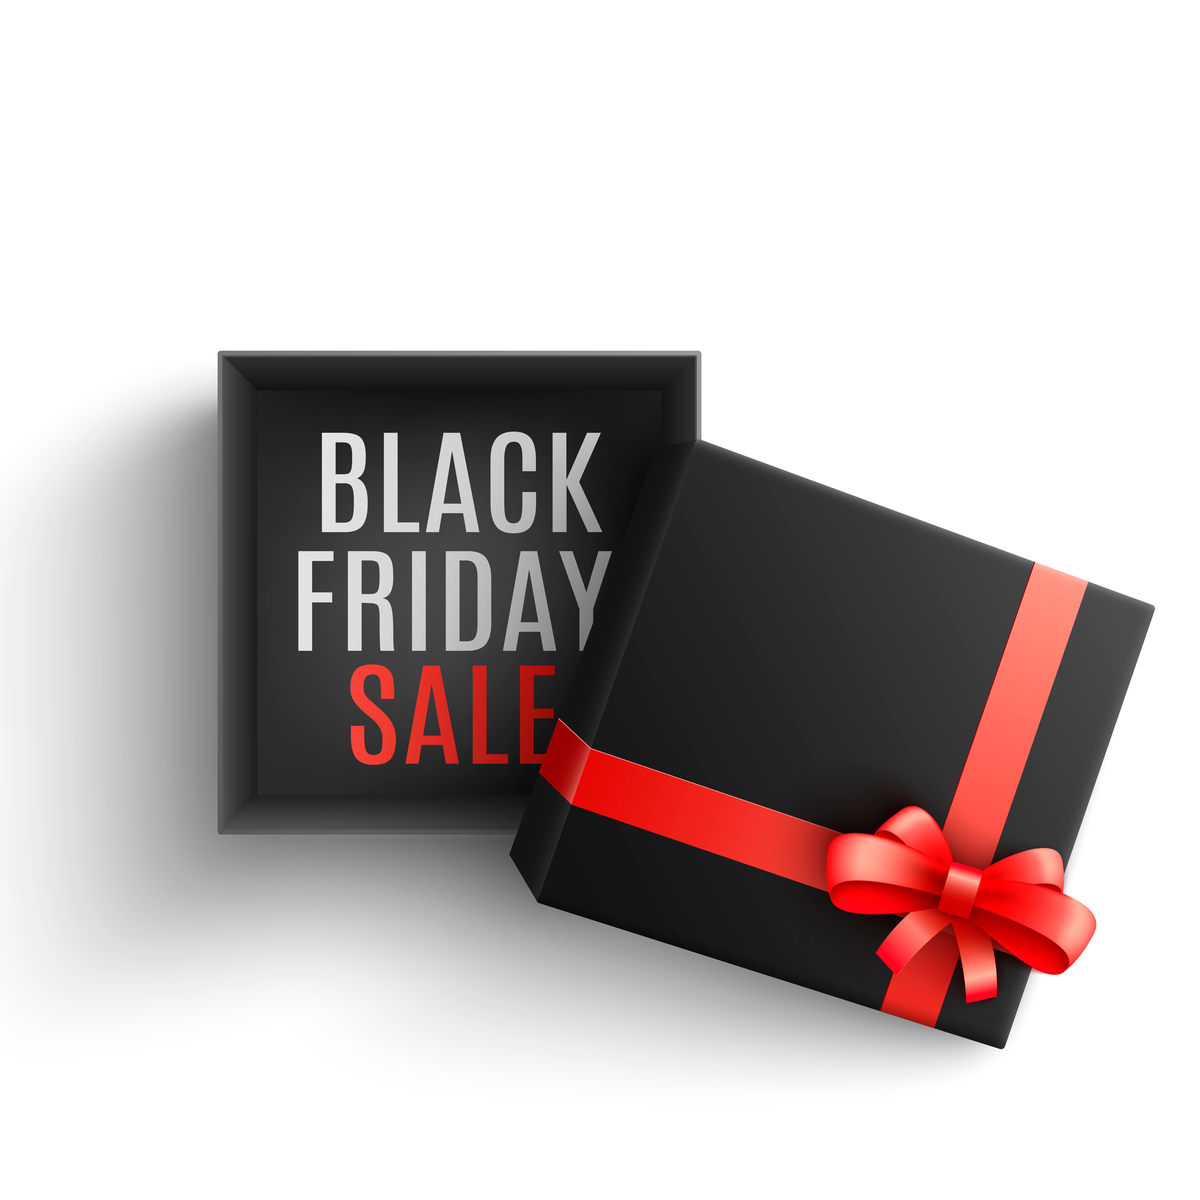 Caixa com escrita Black Friday Sale